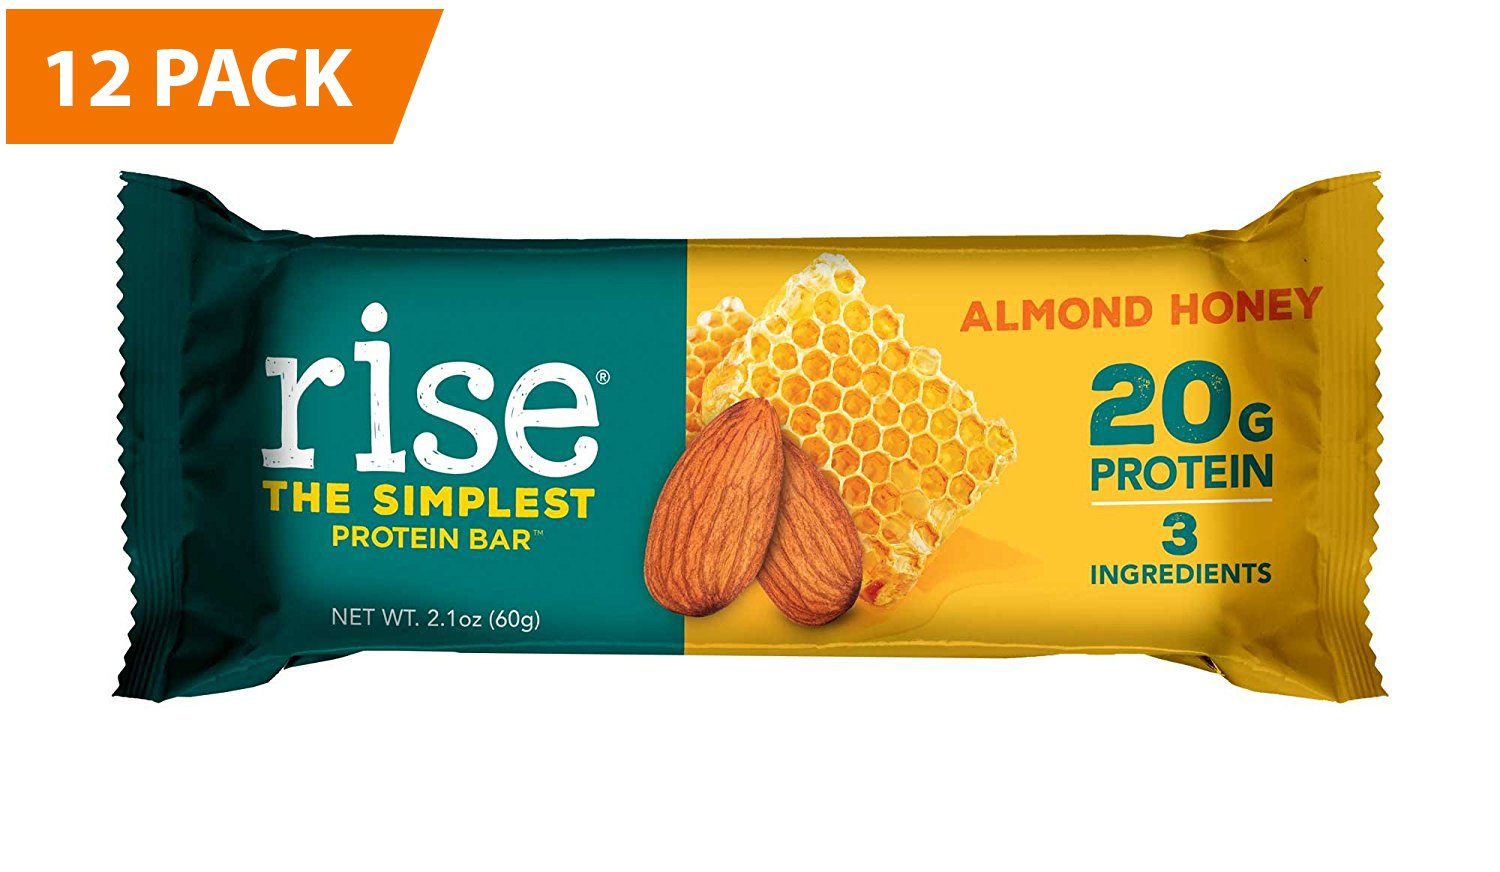 Rise Bar Non-GMO, Gluten Free, Soy Free, Real Whole Food, Whey Protein Bar (20g), No Added Sugar, Almond Honey High Protein Bar with Fiber, Potassium, Natural Vitamins & Nutrients 2.1oz, (12 Count) by RiseBar